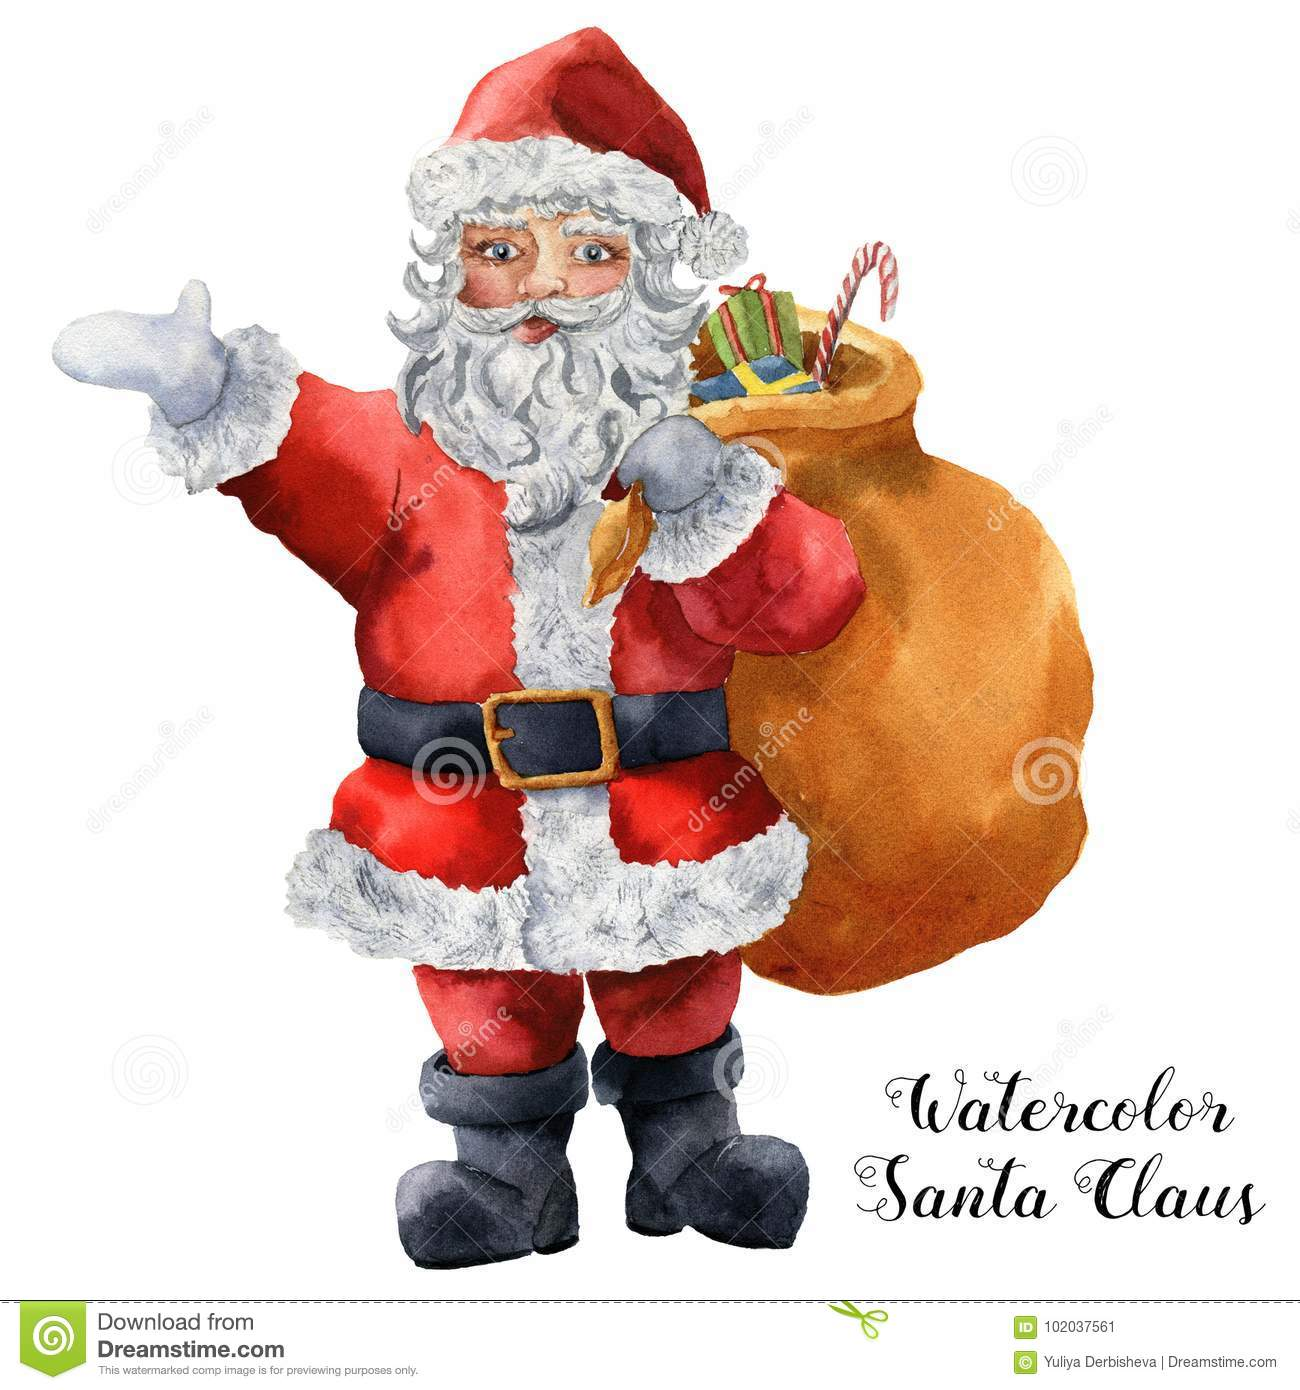 graphic about Santa Claus Printable Pictures named Watercolor Santa Claus. Hand Painted Xmas Identity